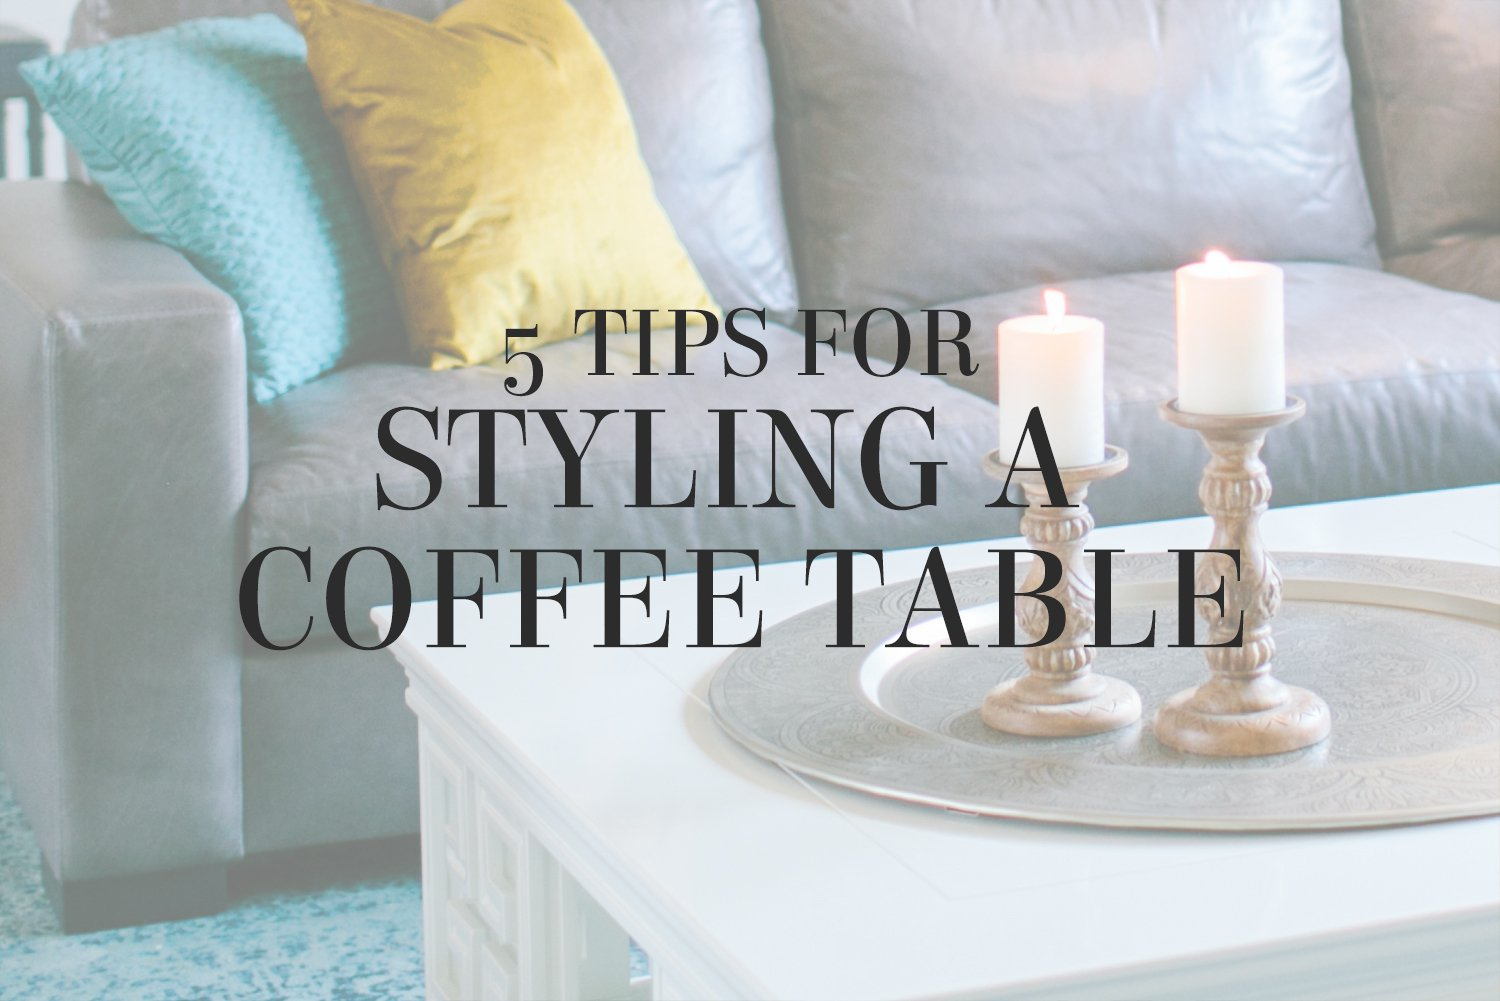 5 tips for styling a coffee table that looks awesome AND has room for your coffee (!) from interior designer Lesley Myrick